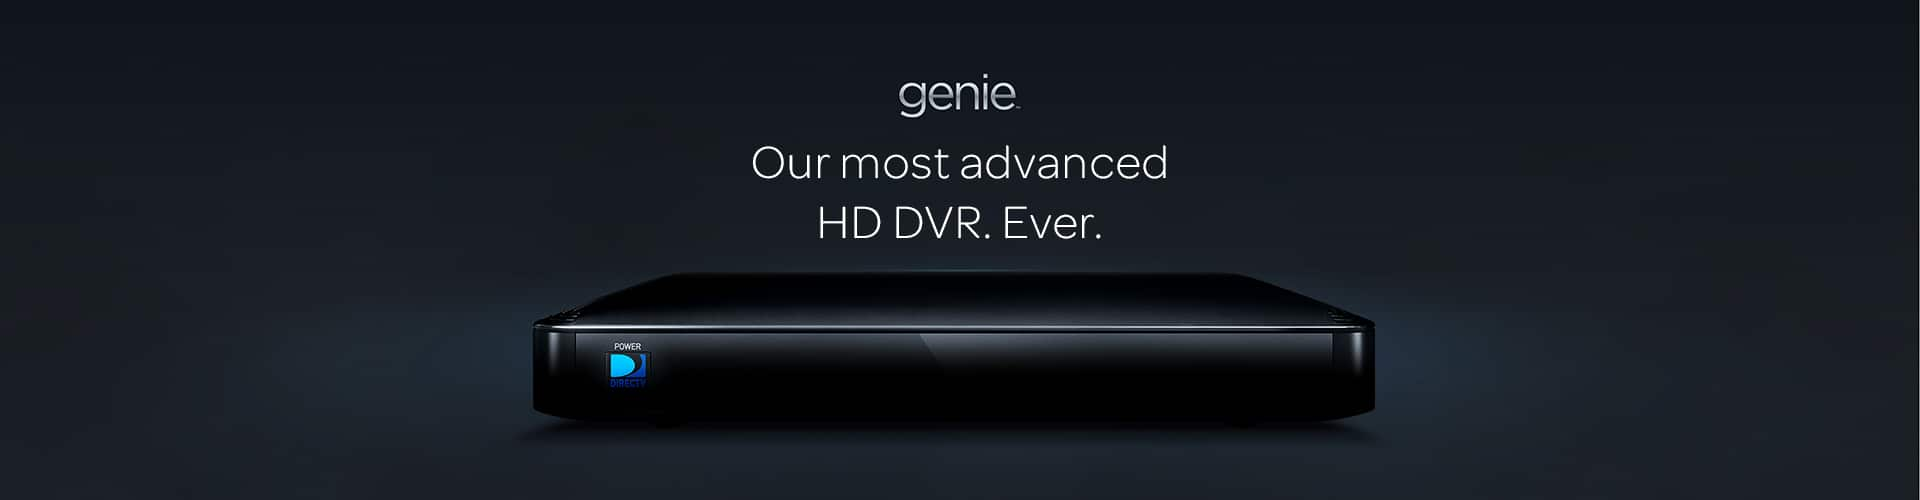 Directv Genie Hd Dvr Our Most Advanced Dvr Ever